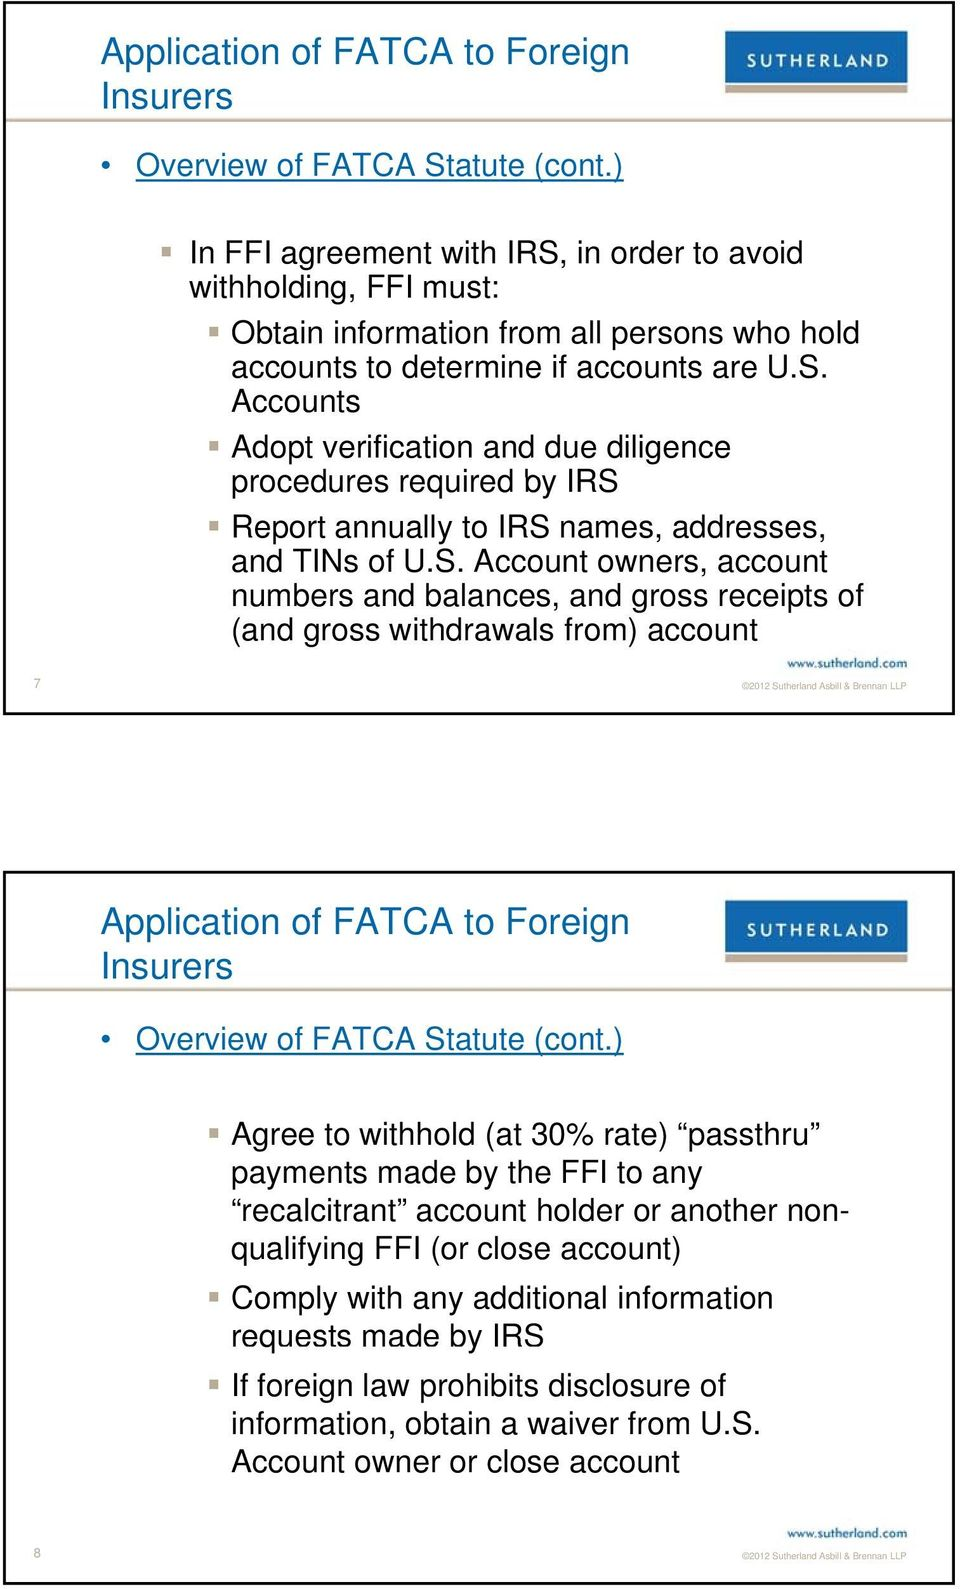 ) Agree to withhold (at 30% rate) passthru payments made by the FFI to any recalcitrant account holder or another nonqualifying FFI (or close account) Comply with any additional information